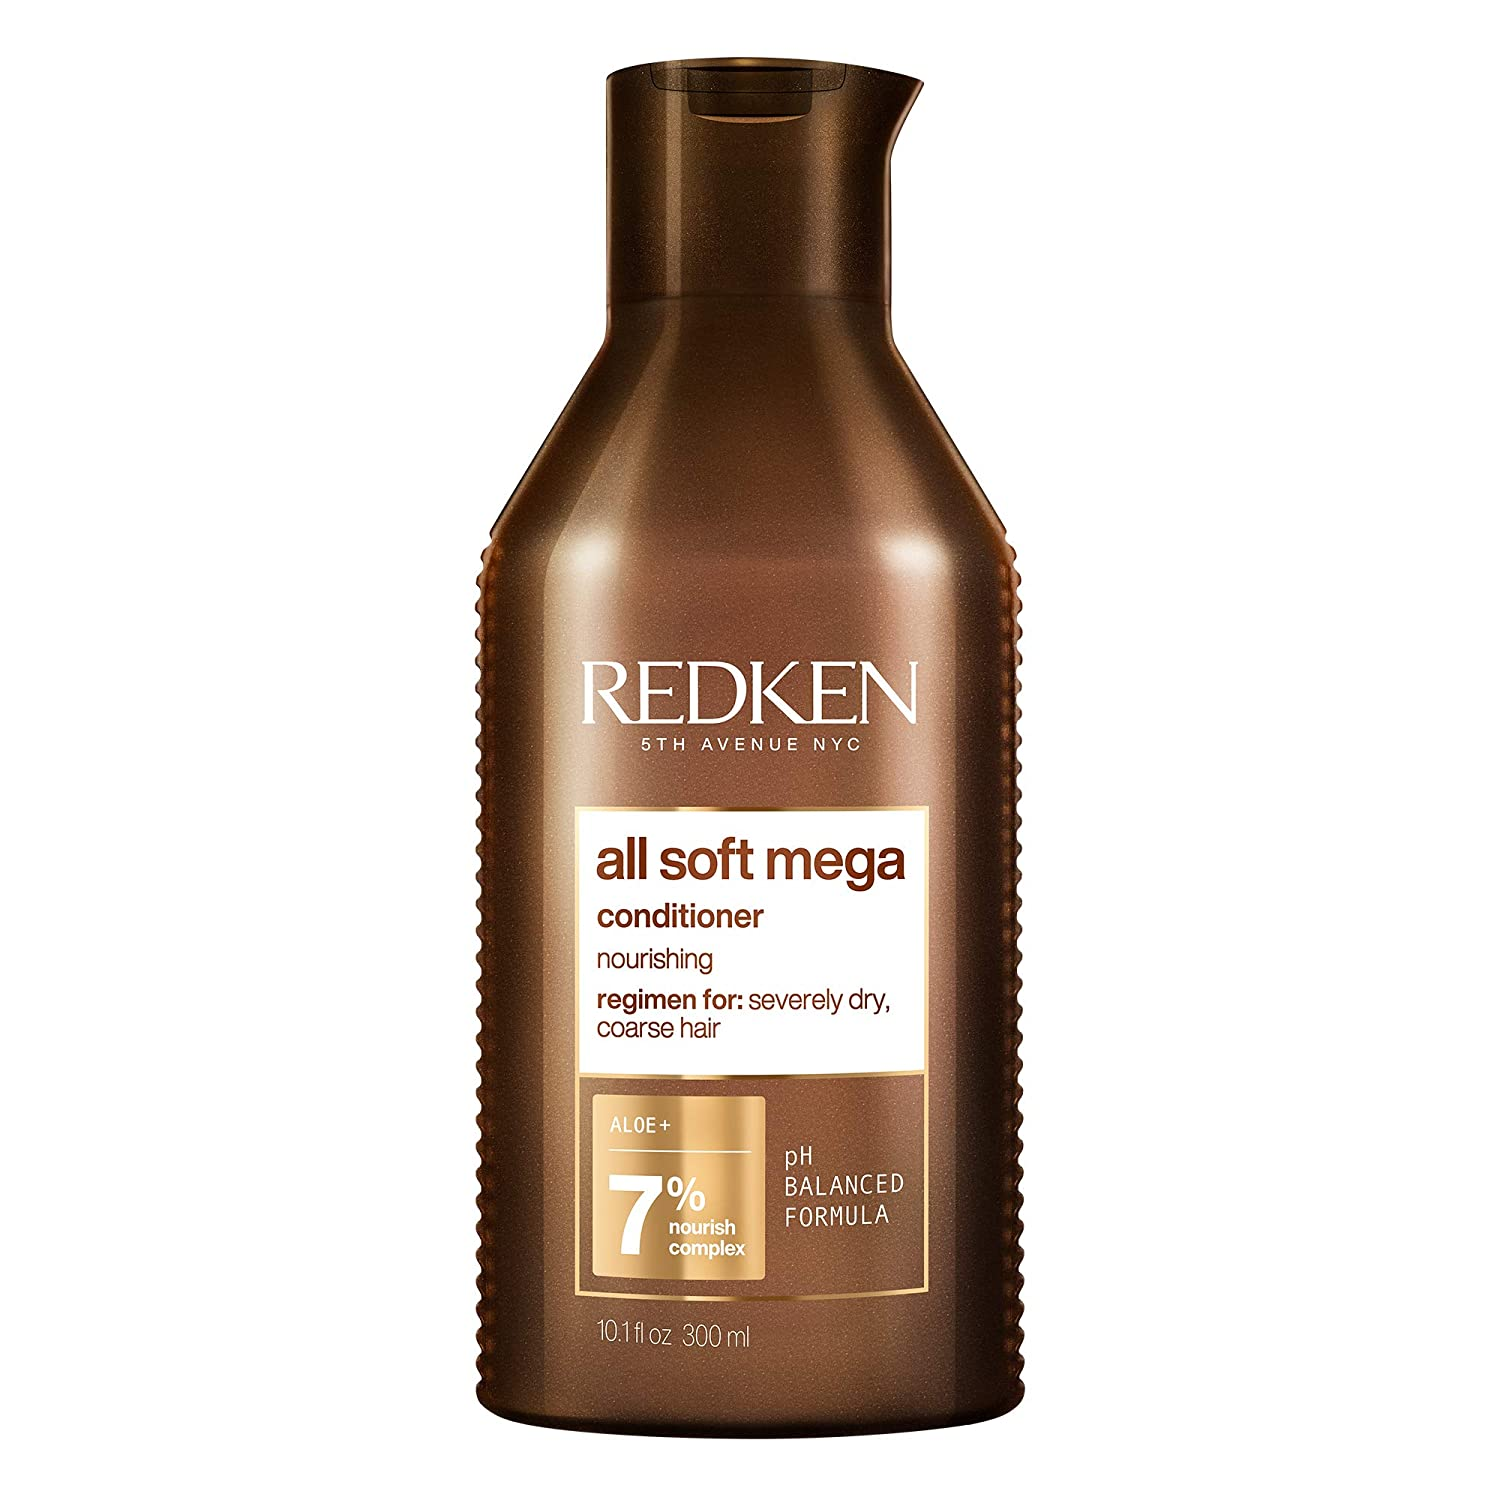 Redken Albuquerque Mall All Soft Mega Conditioner Dry For Extremely Nour Branded goods Hair